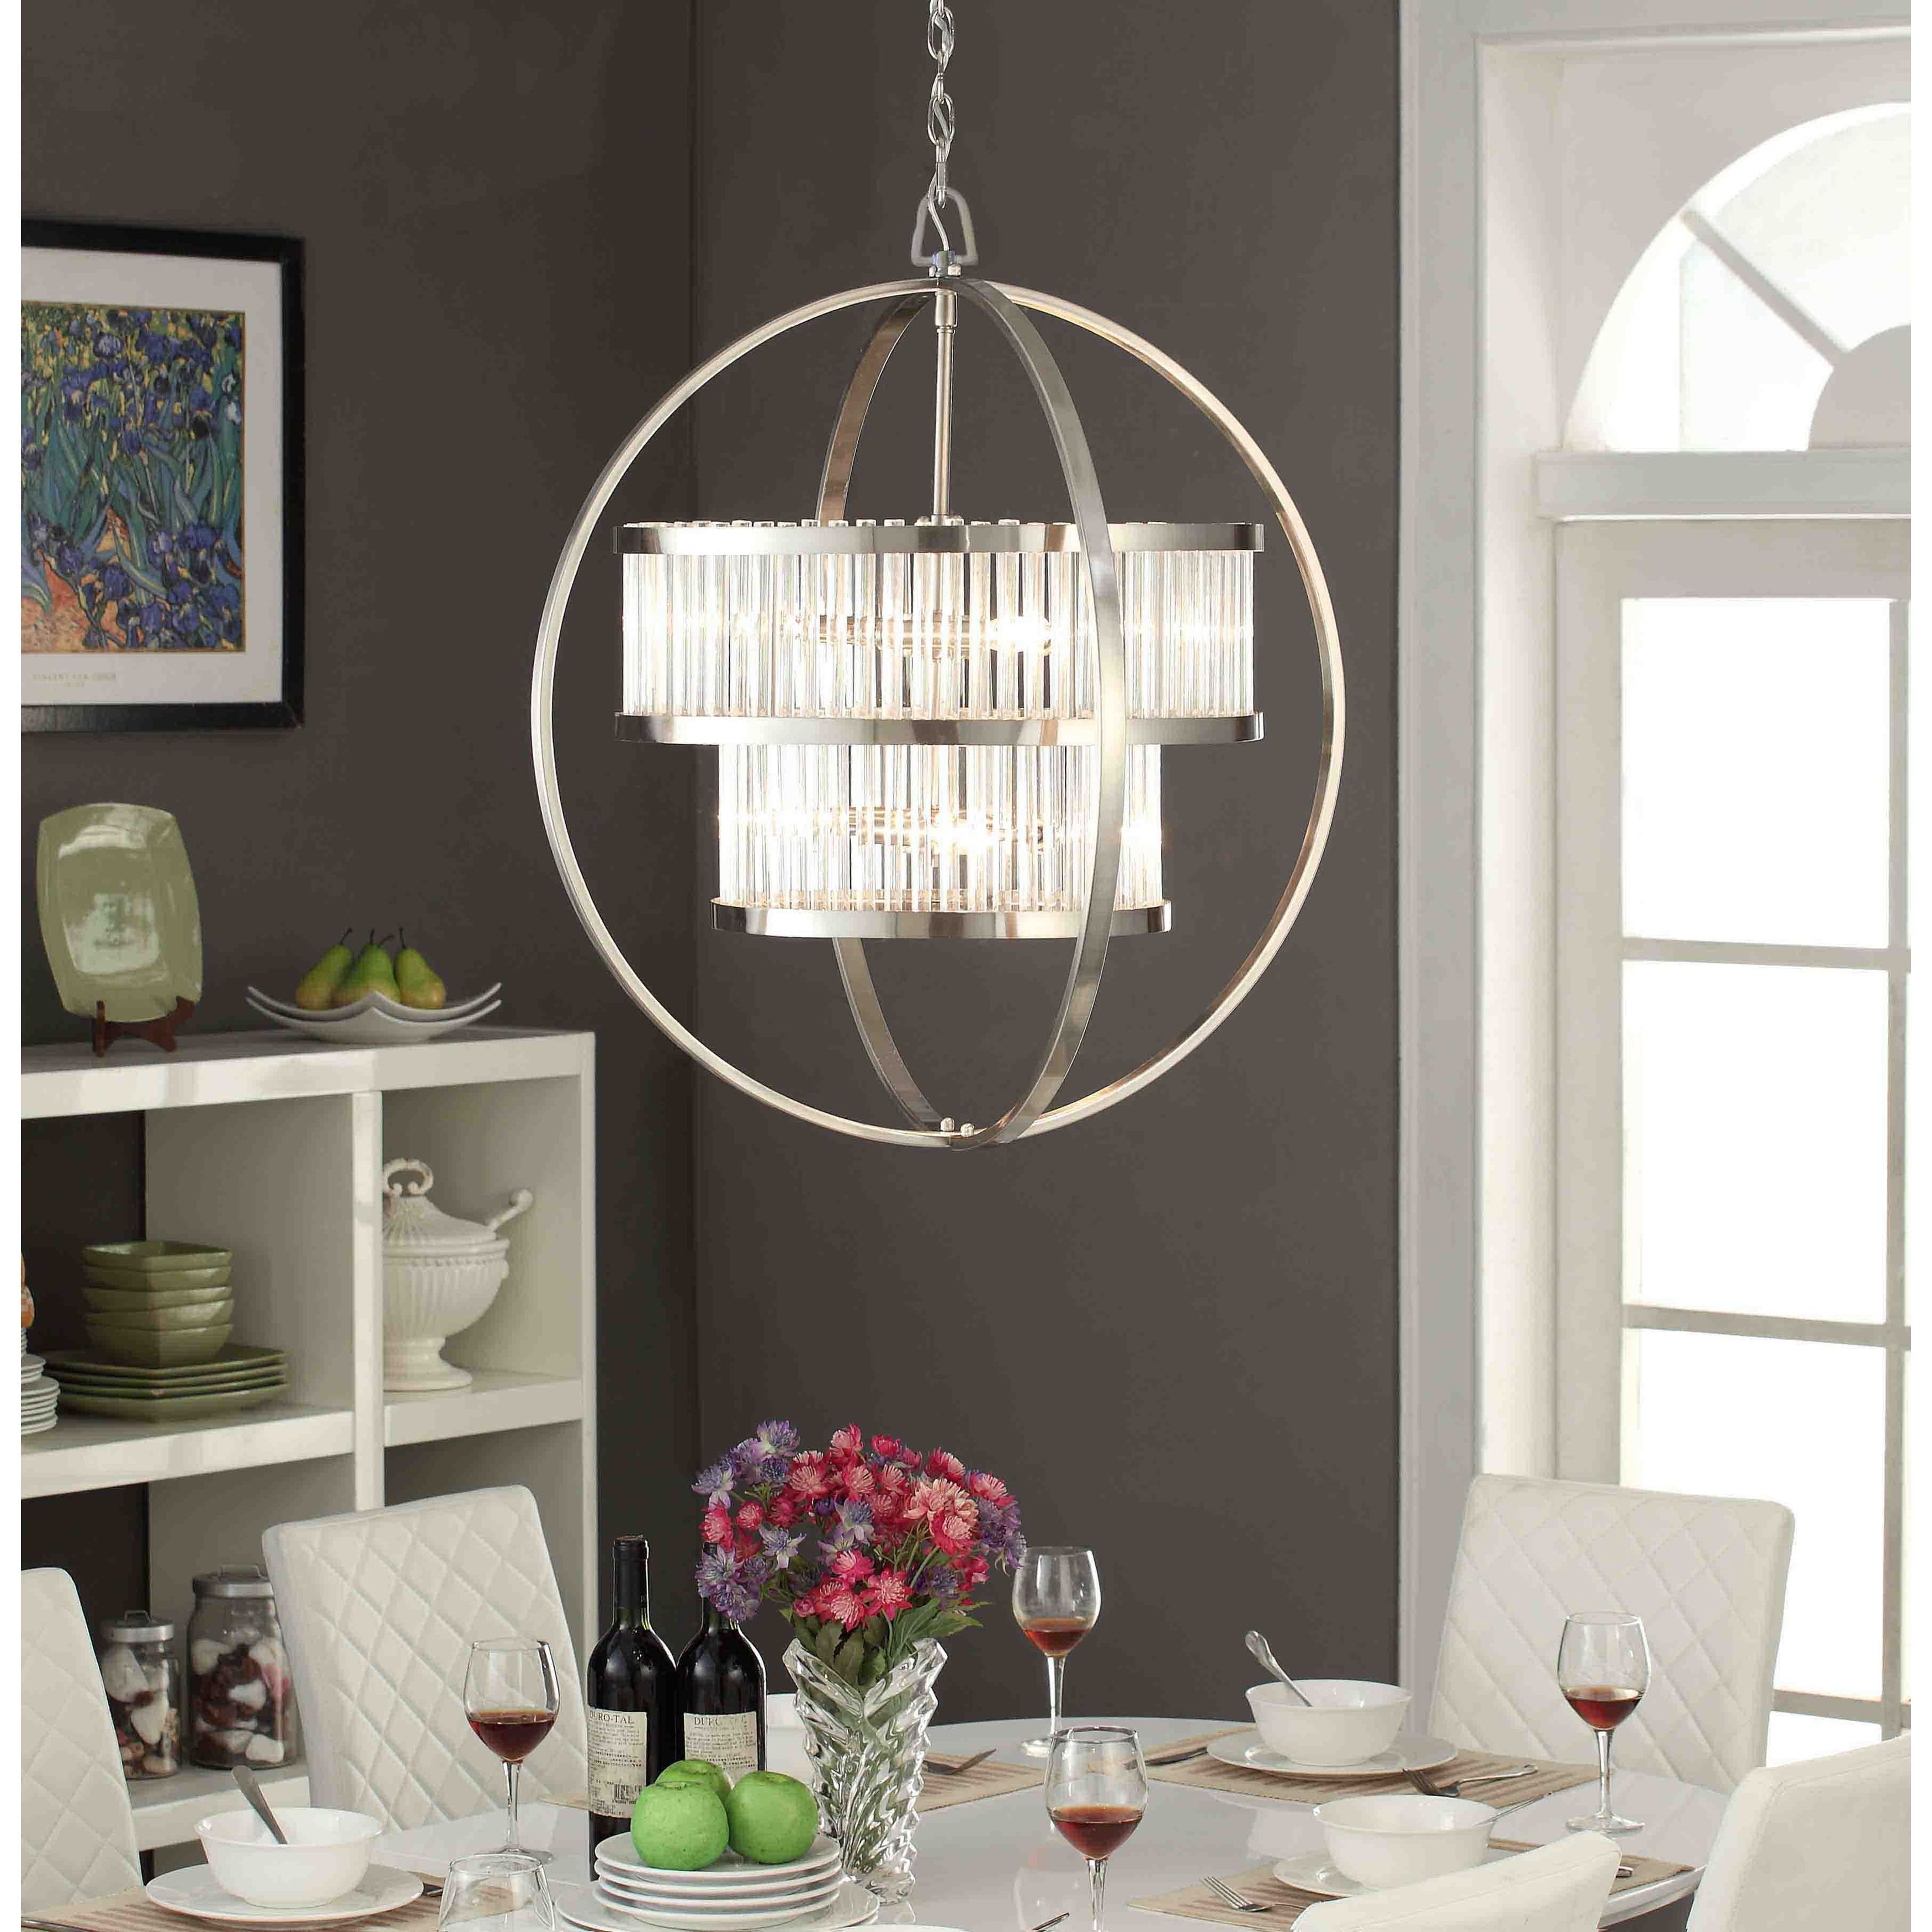 Illuminate Your Home With Elegance Featuring This Nickel Finished 6 Light Hanging Fixture Professional